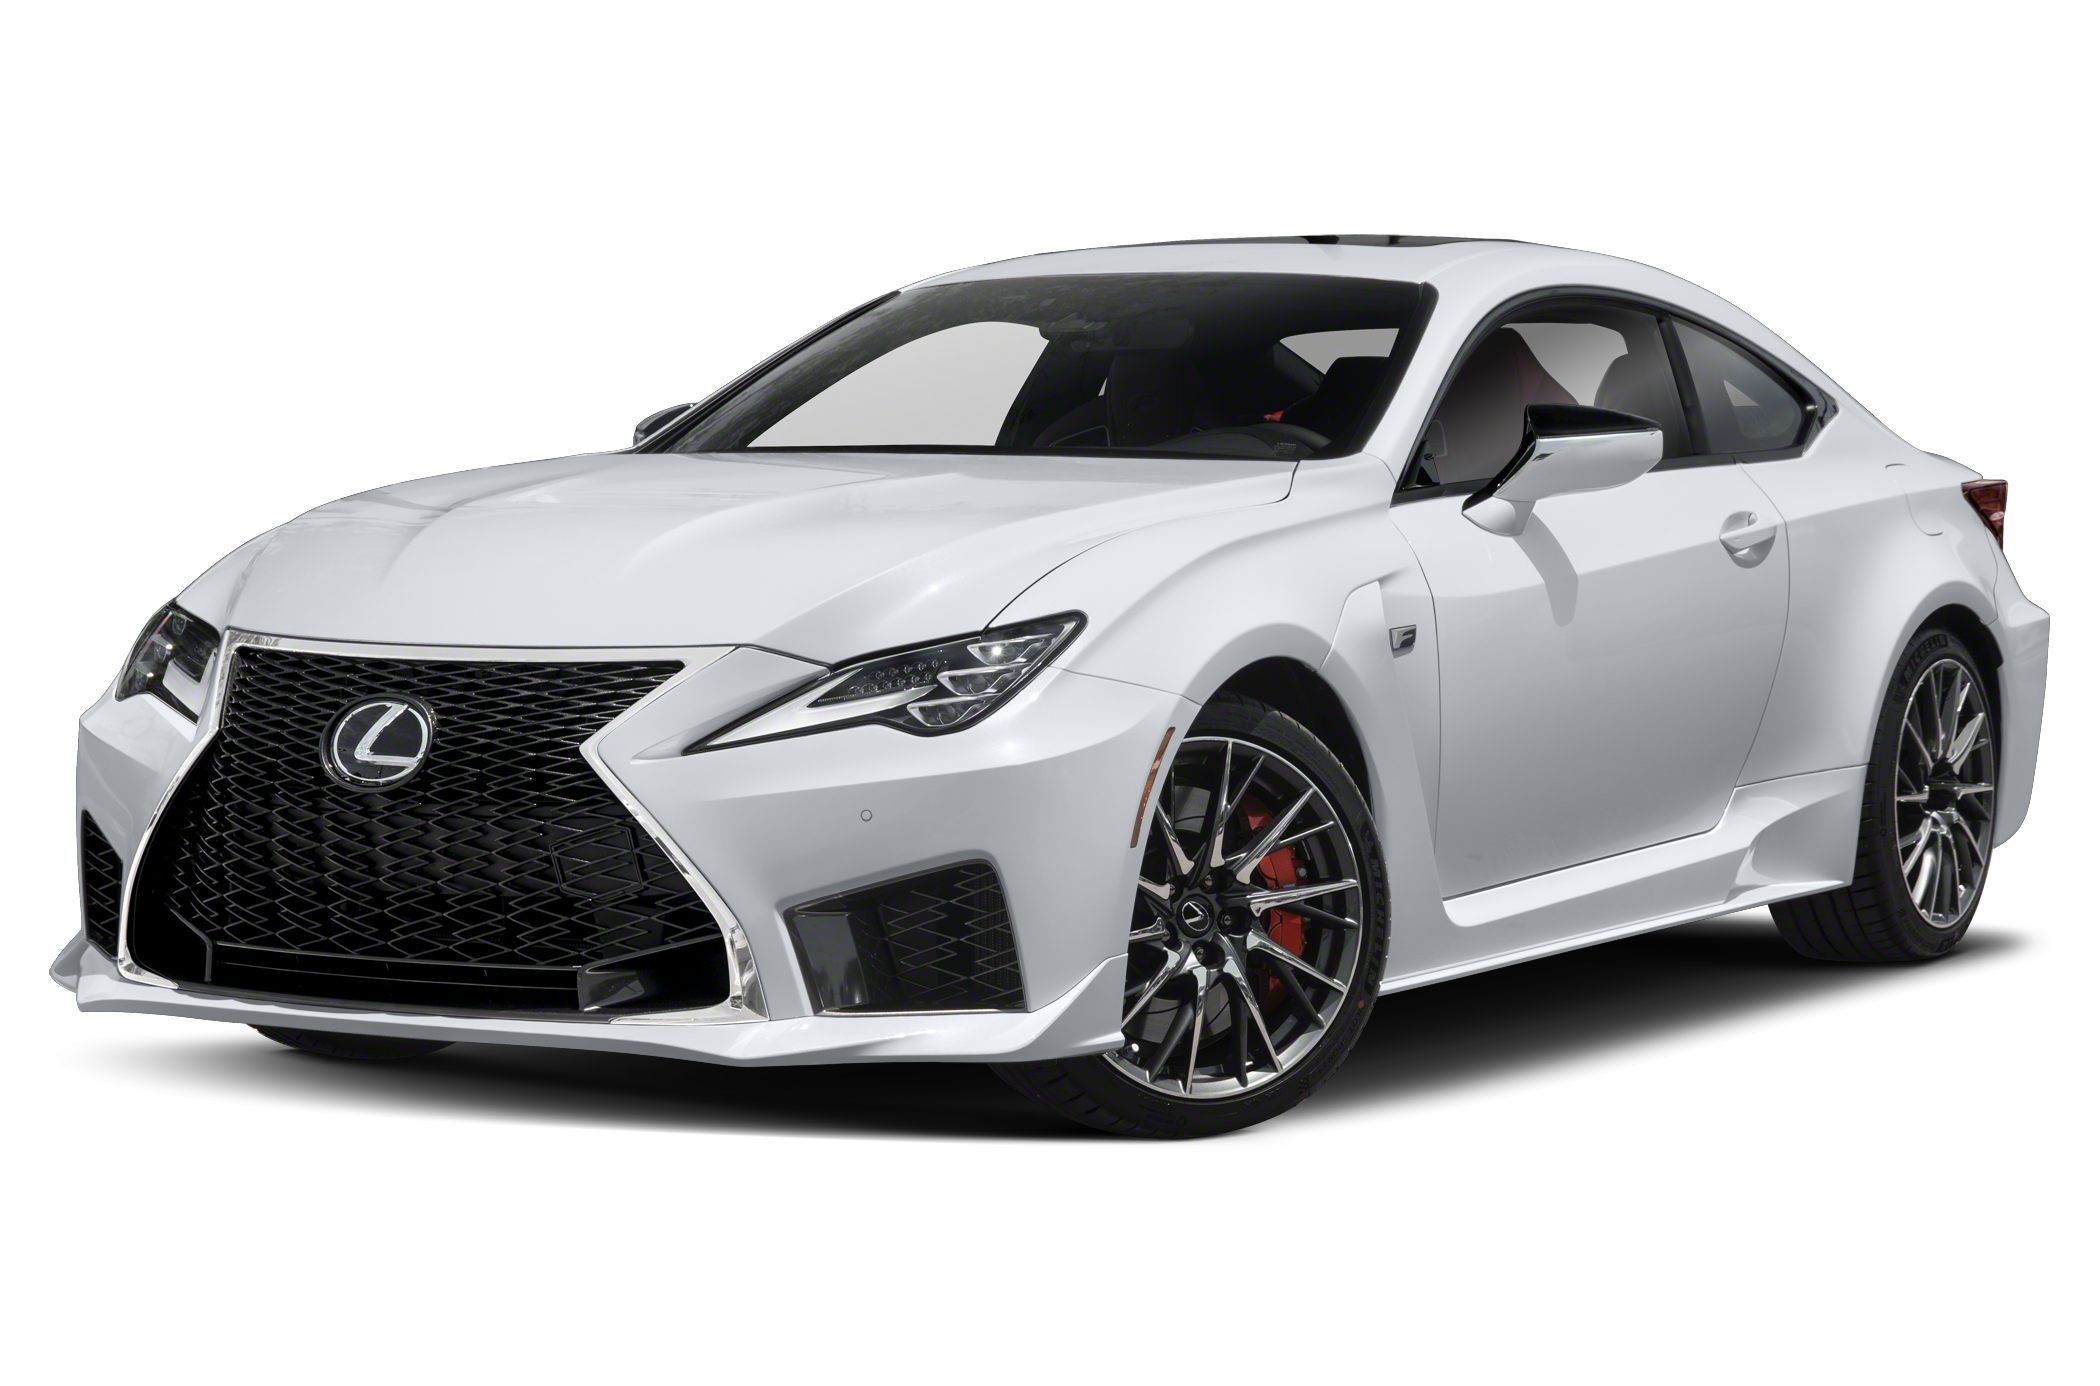 Lexus Rc F 2021 Price Concept and Review